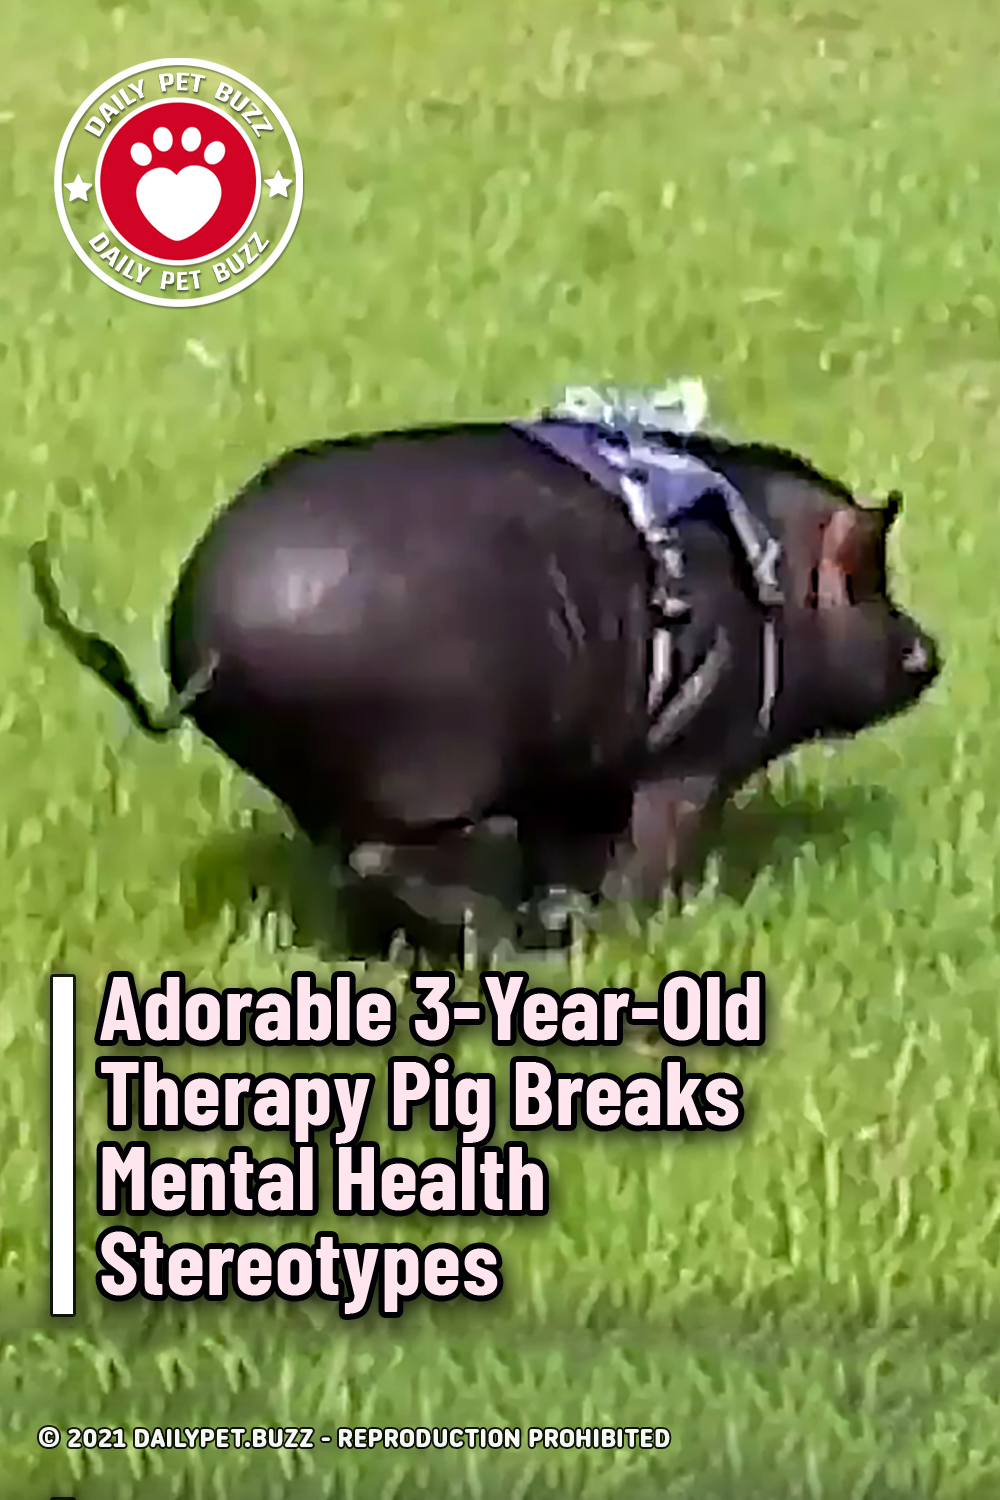 Adorable 3-Year-Old Therapy Pig Breaks Mental Health Stereotypes